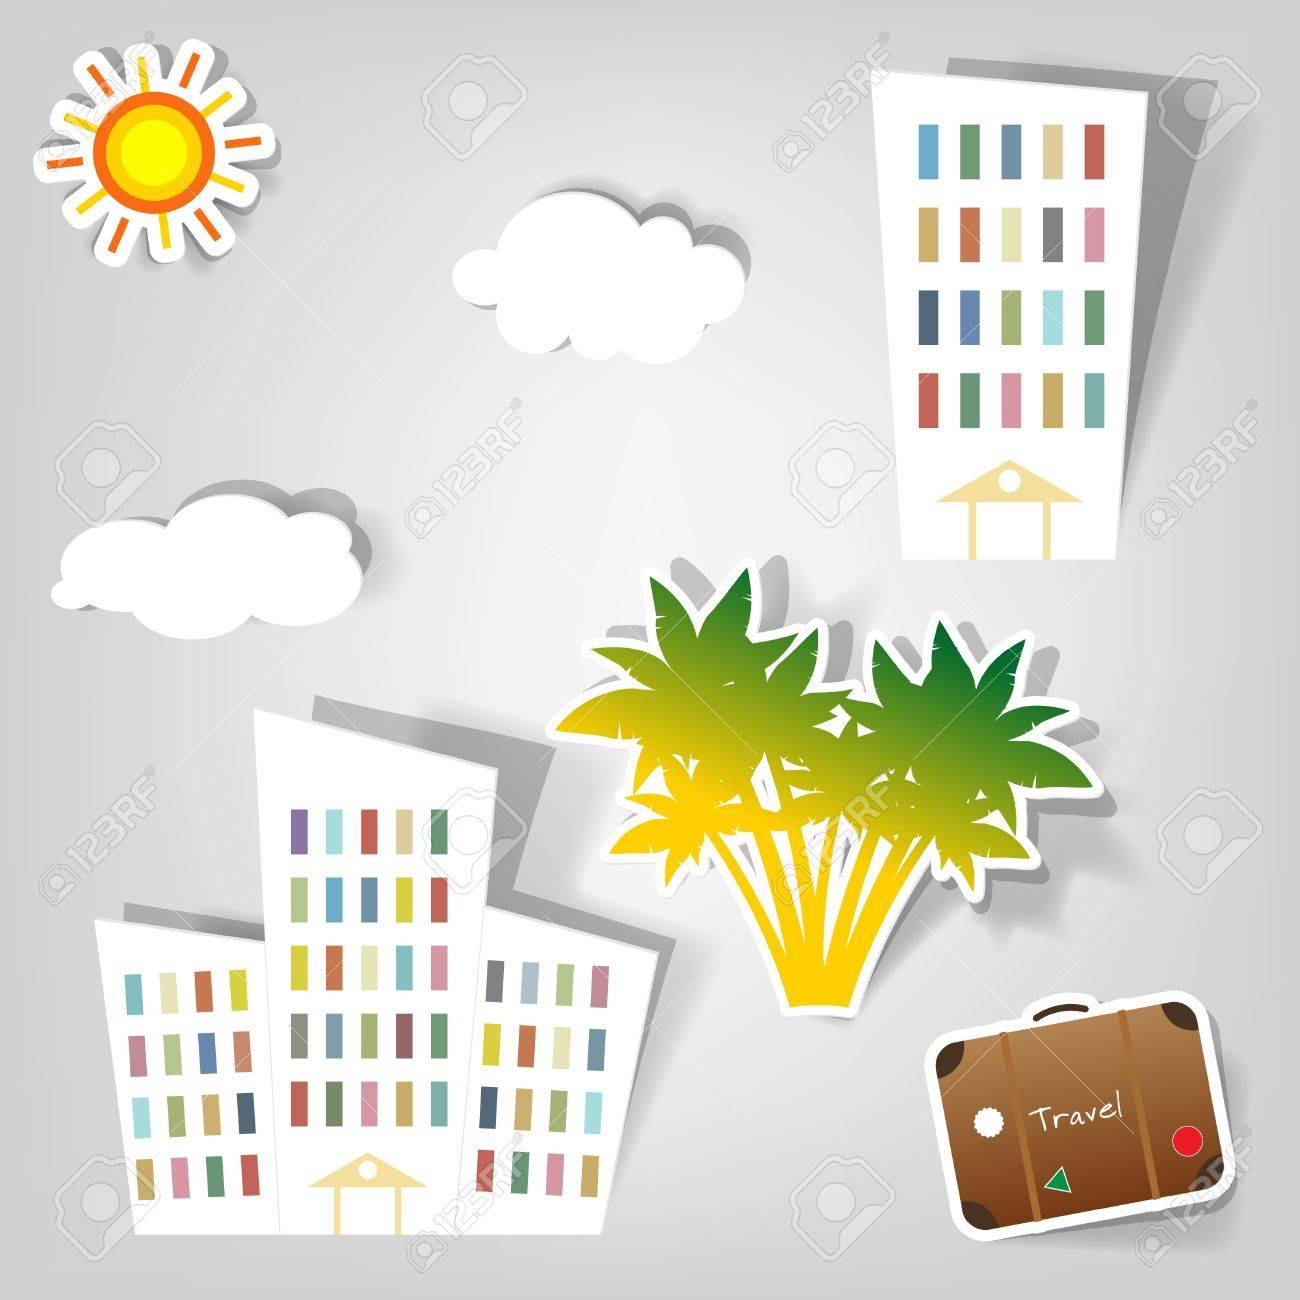 A Set Of Design Elements To Advertise Travel Services Royalty Free ...